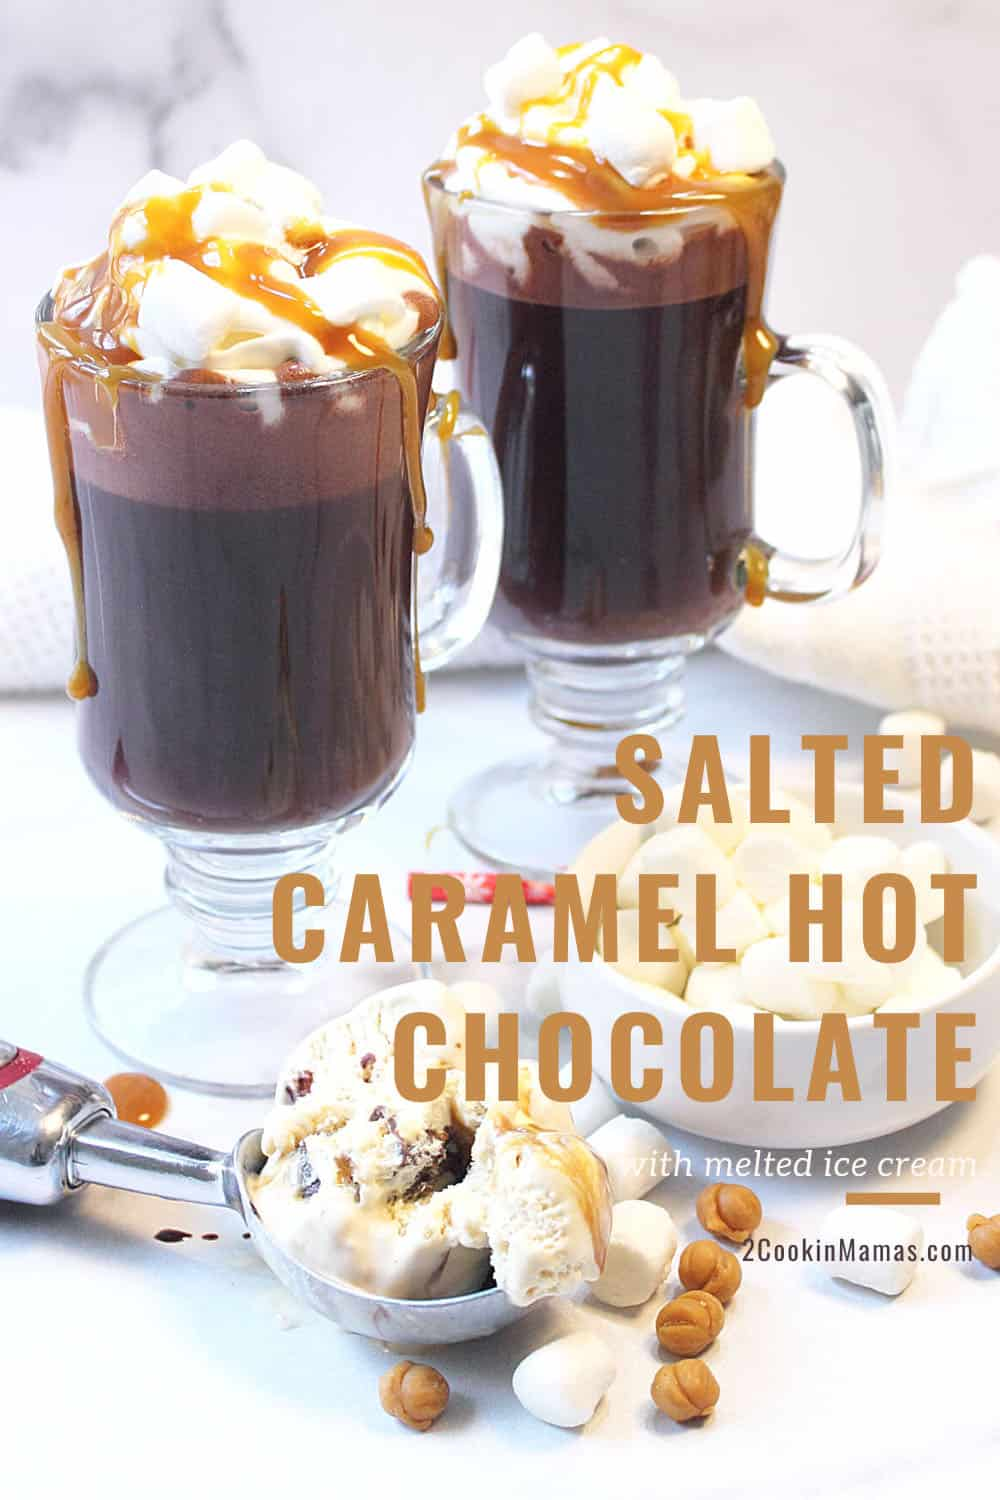 Salted Caramel Hot Chocolate with Melted Ice Cream